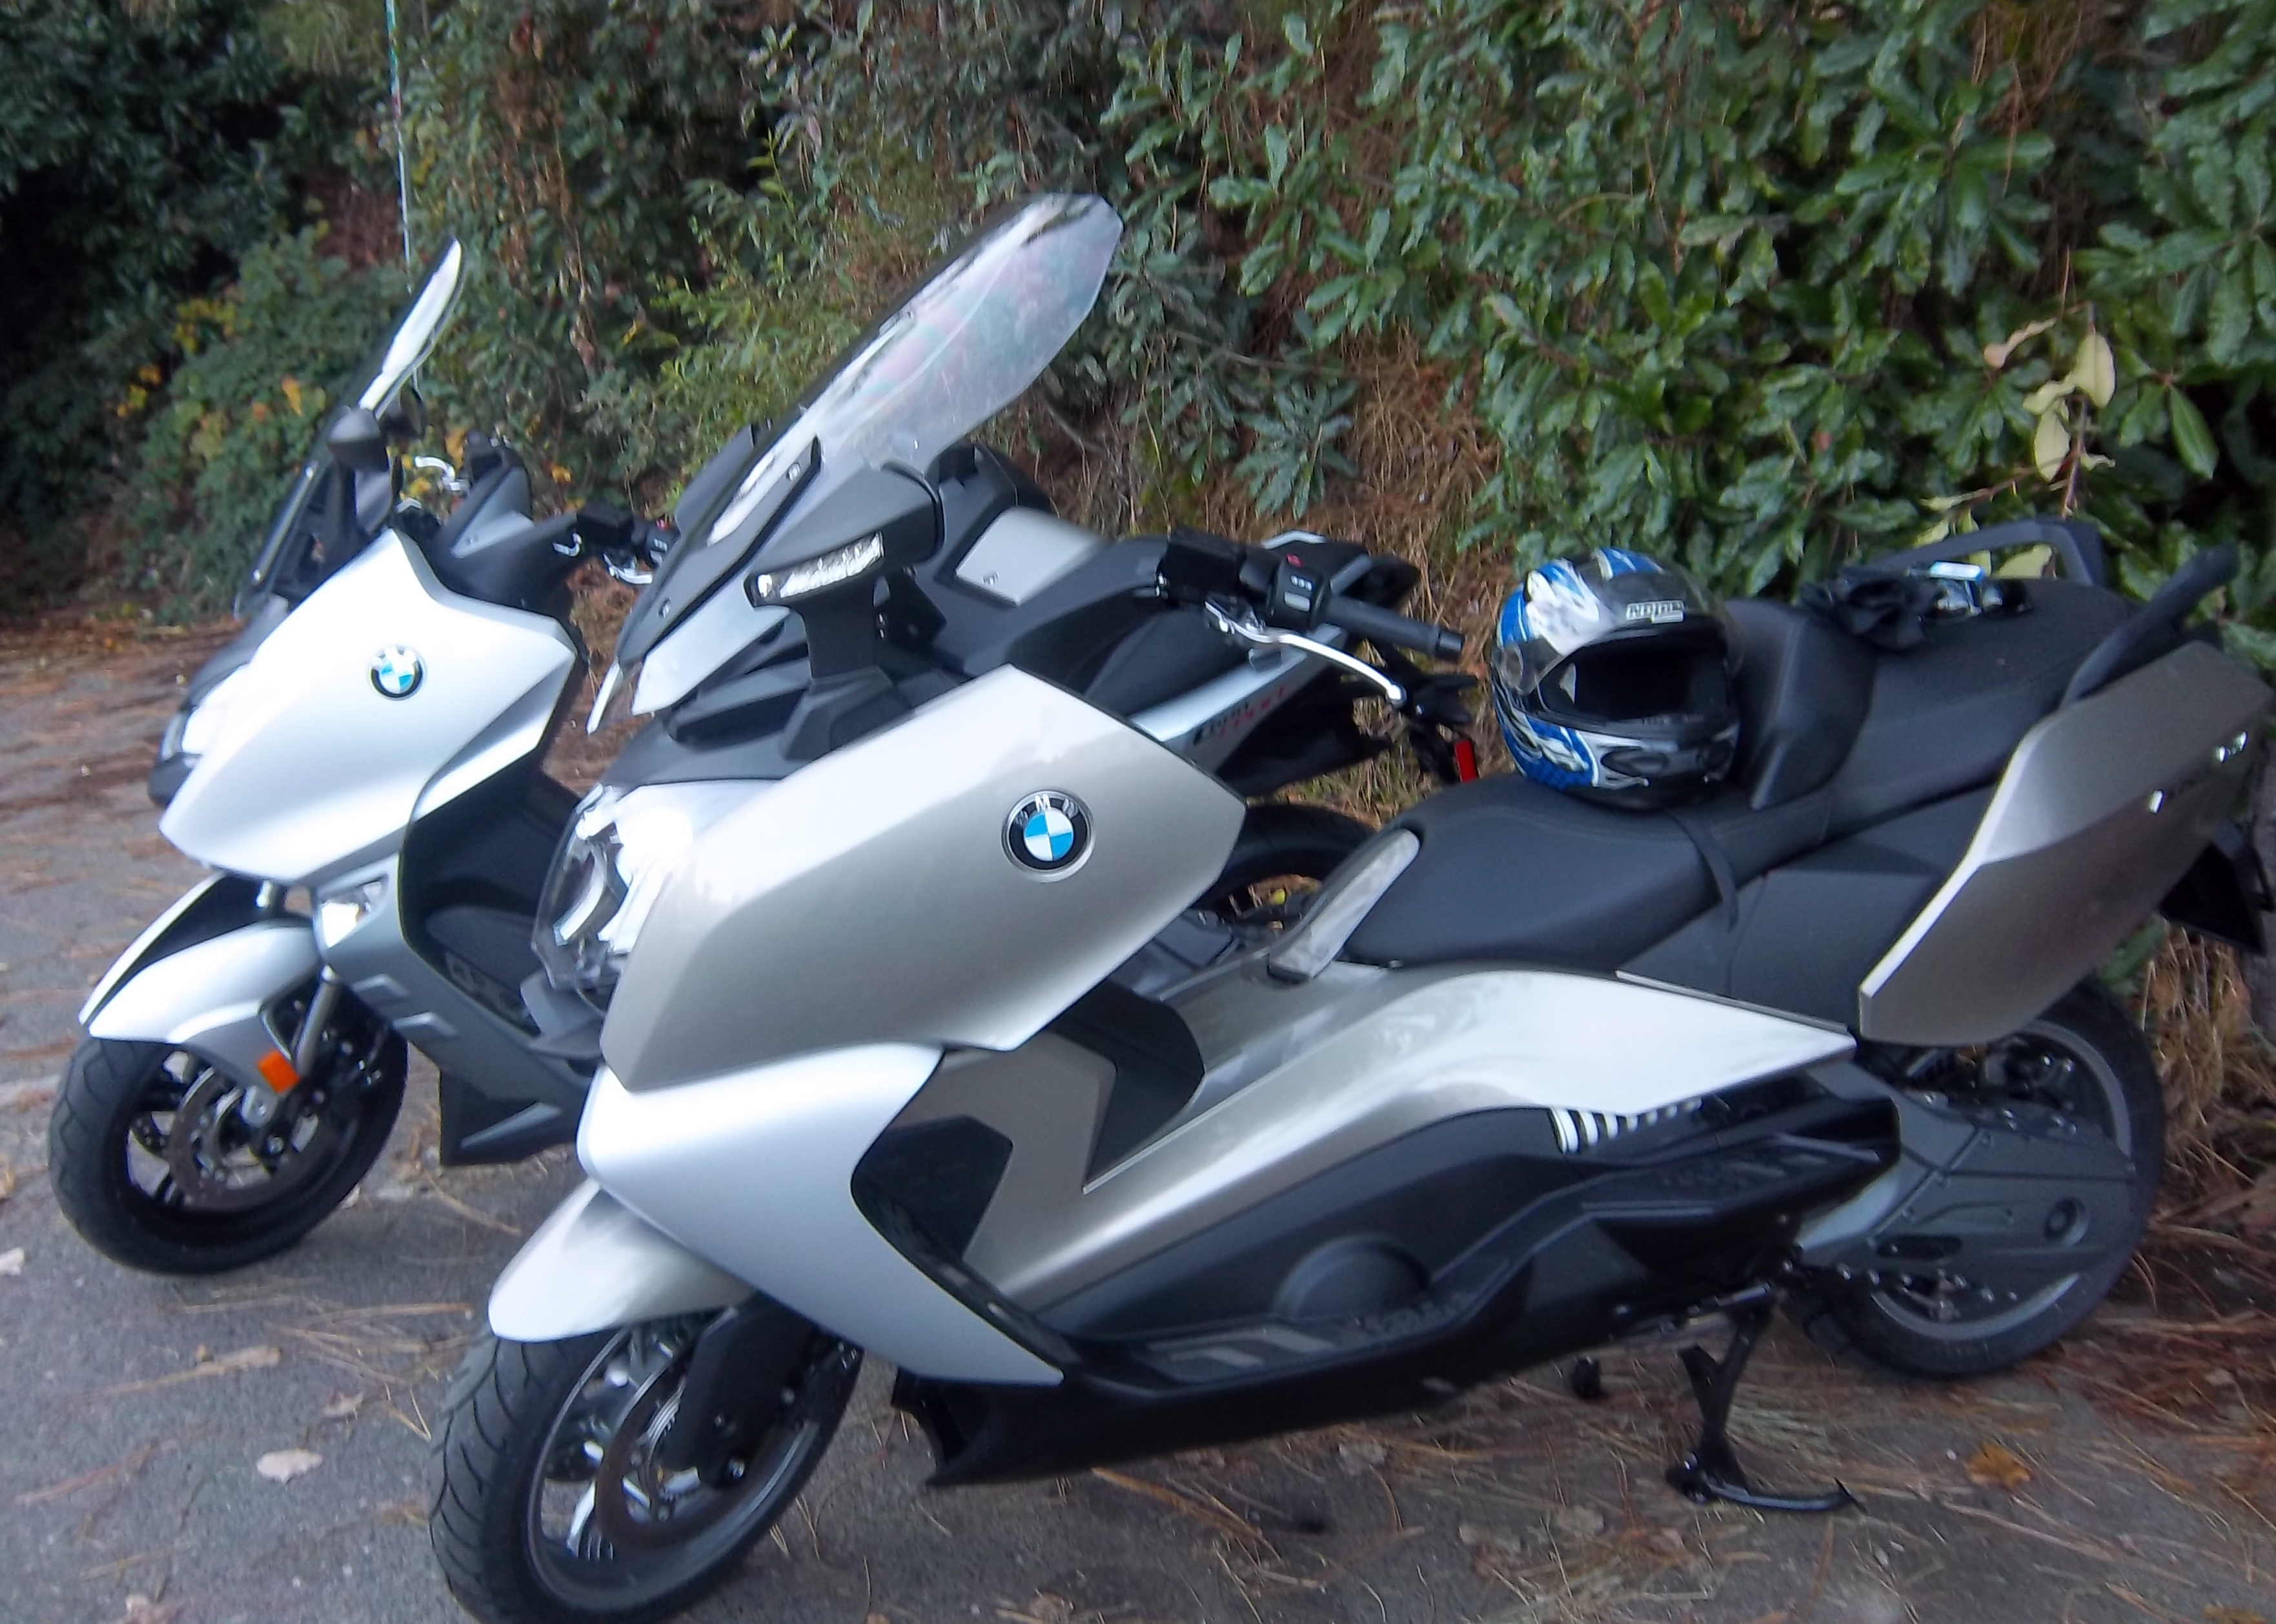 BMW C Scooters in the wild